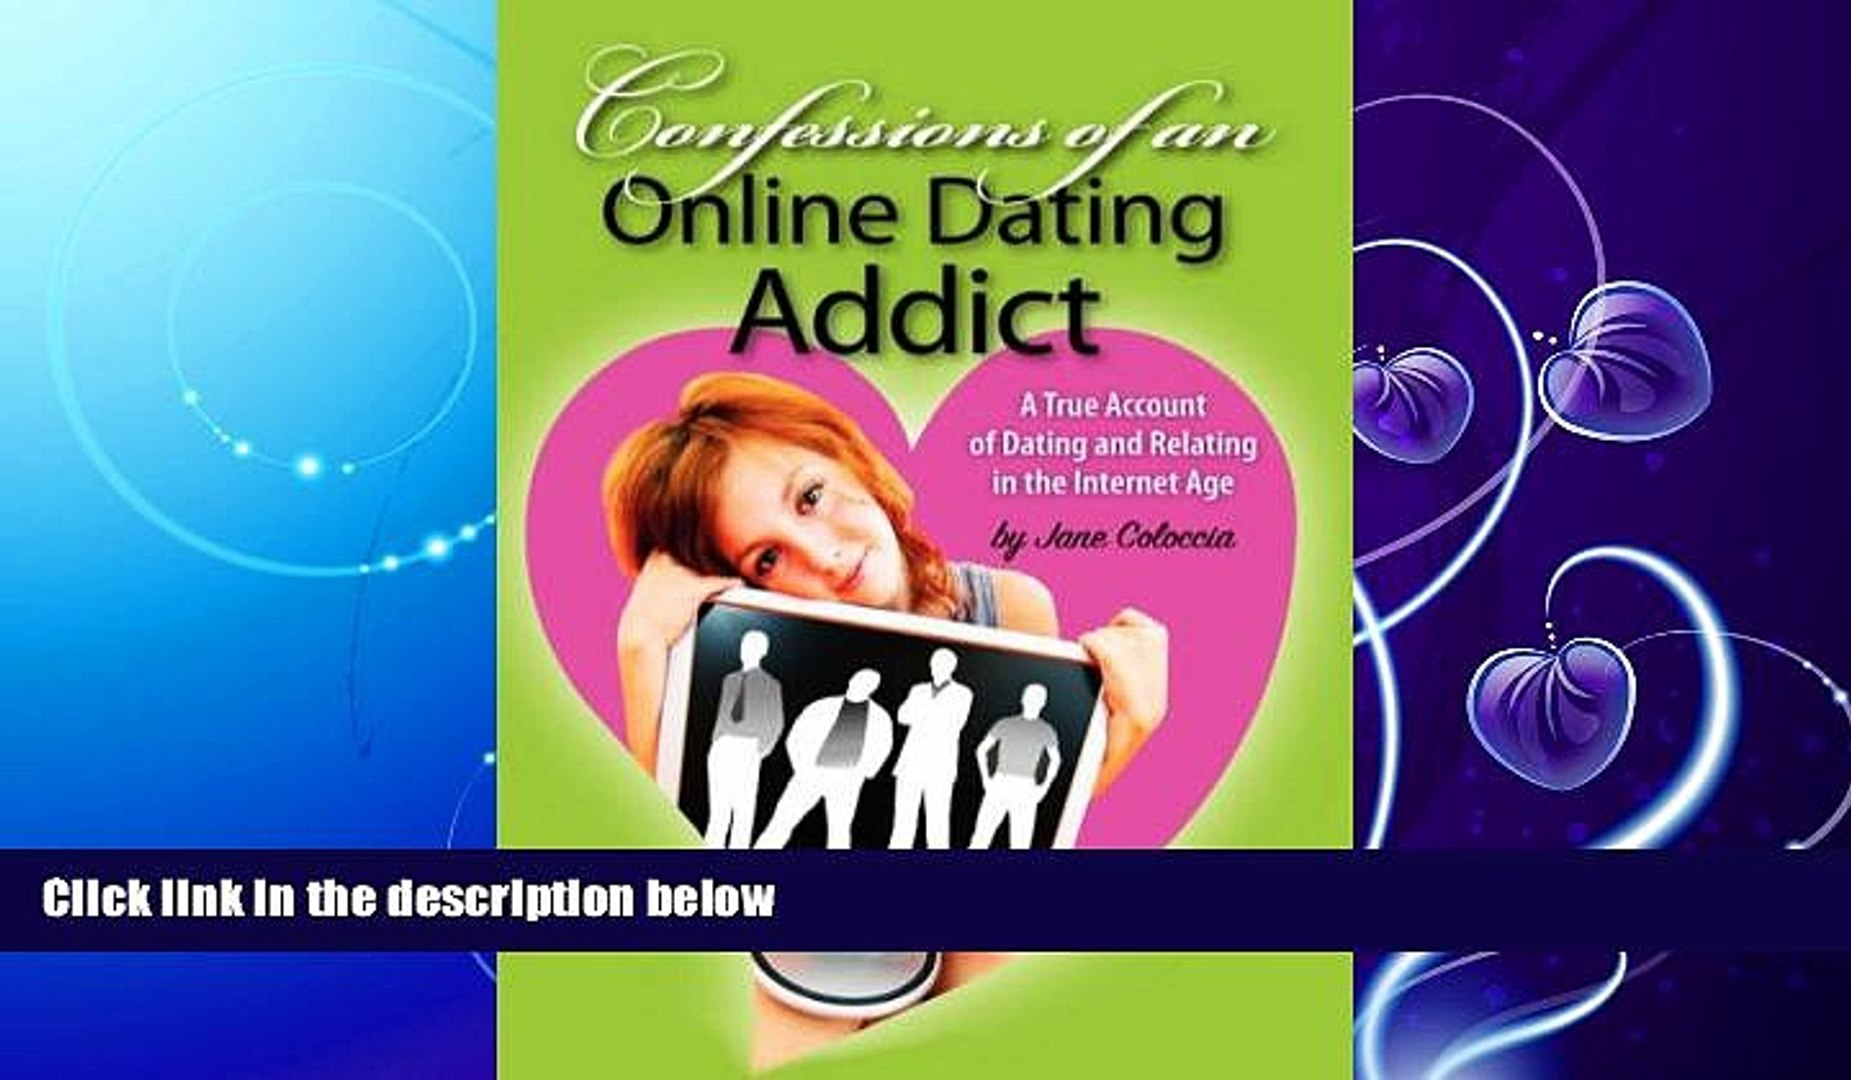 Online dating Confessions